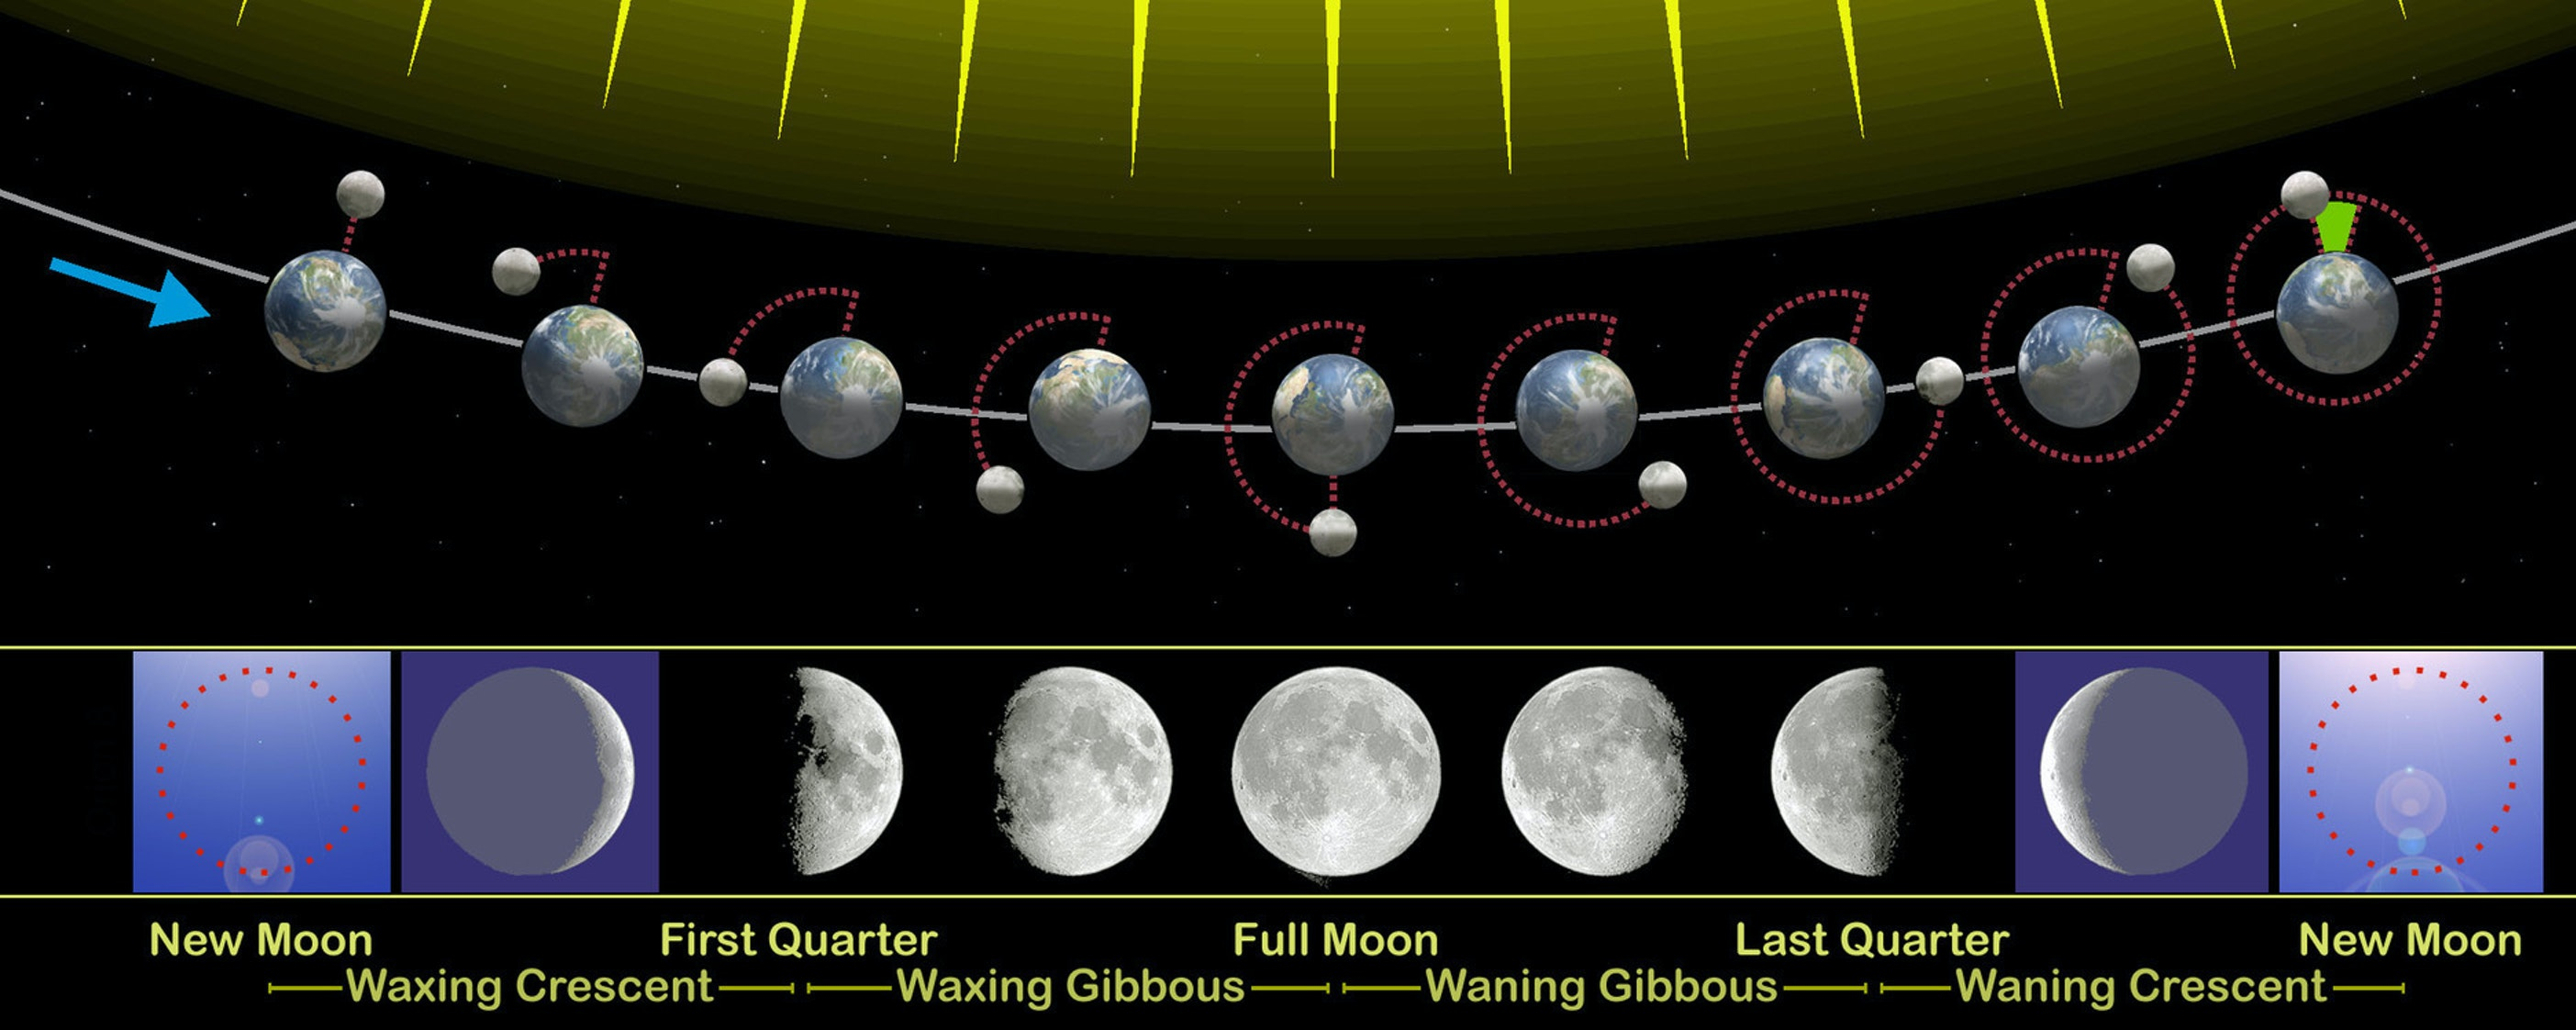 The moon's phases as it revolves around the earth